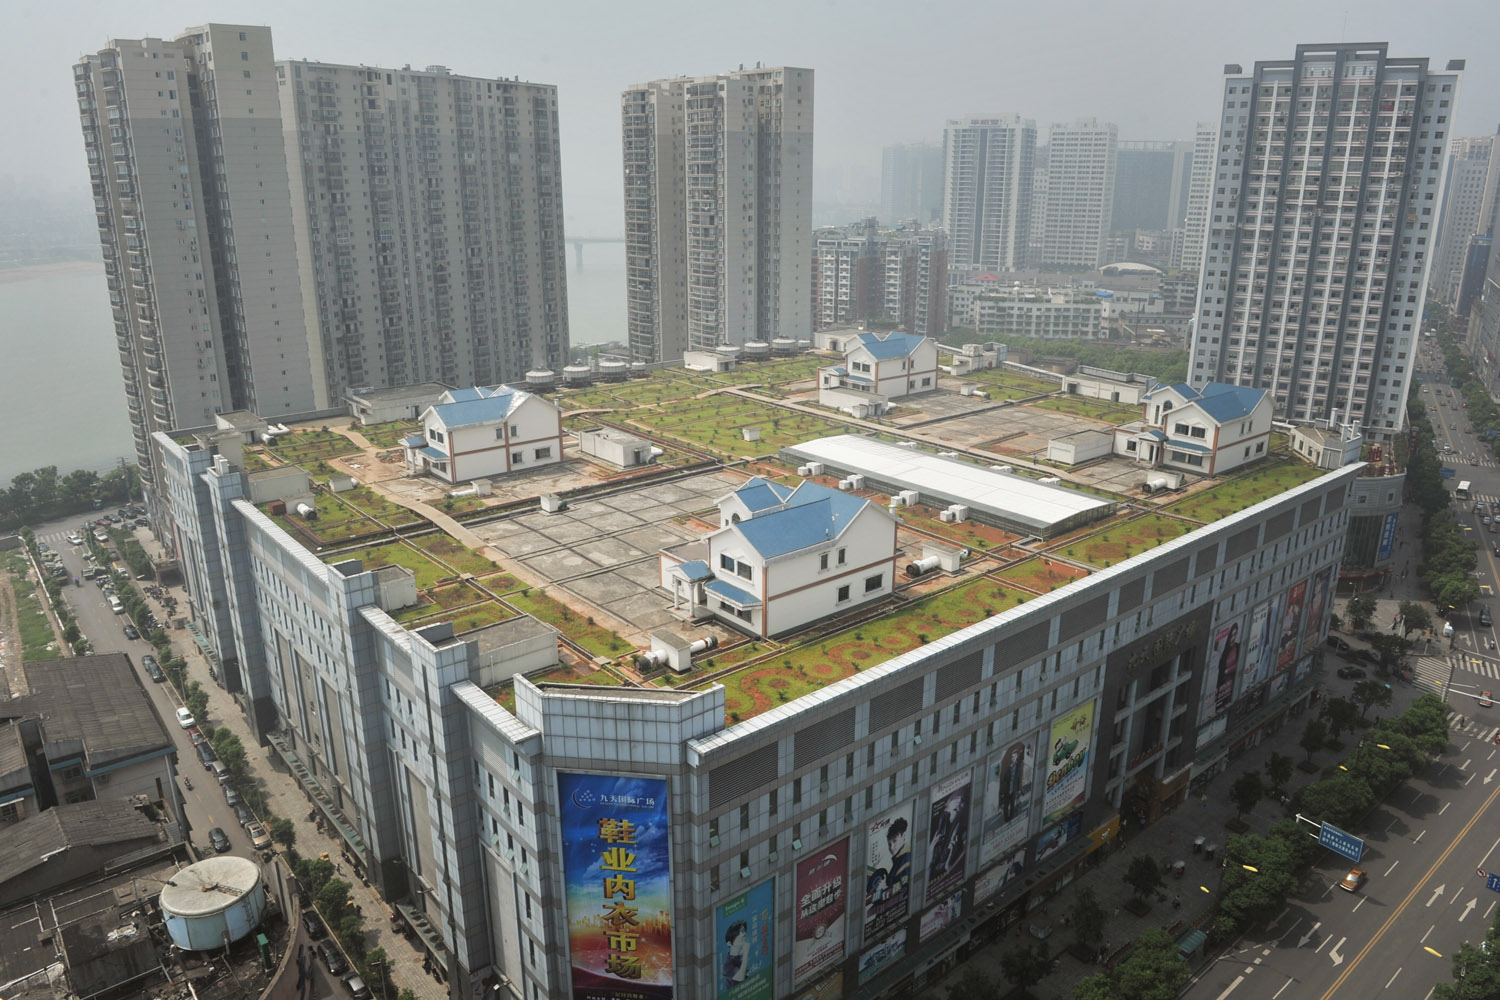 Aug. 14, 2012. Villas are seen on the top of an eight-story shopping mall in Zhuzhou, China.